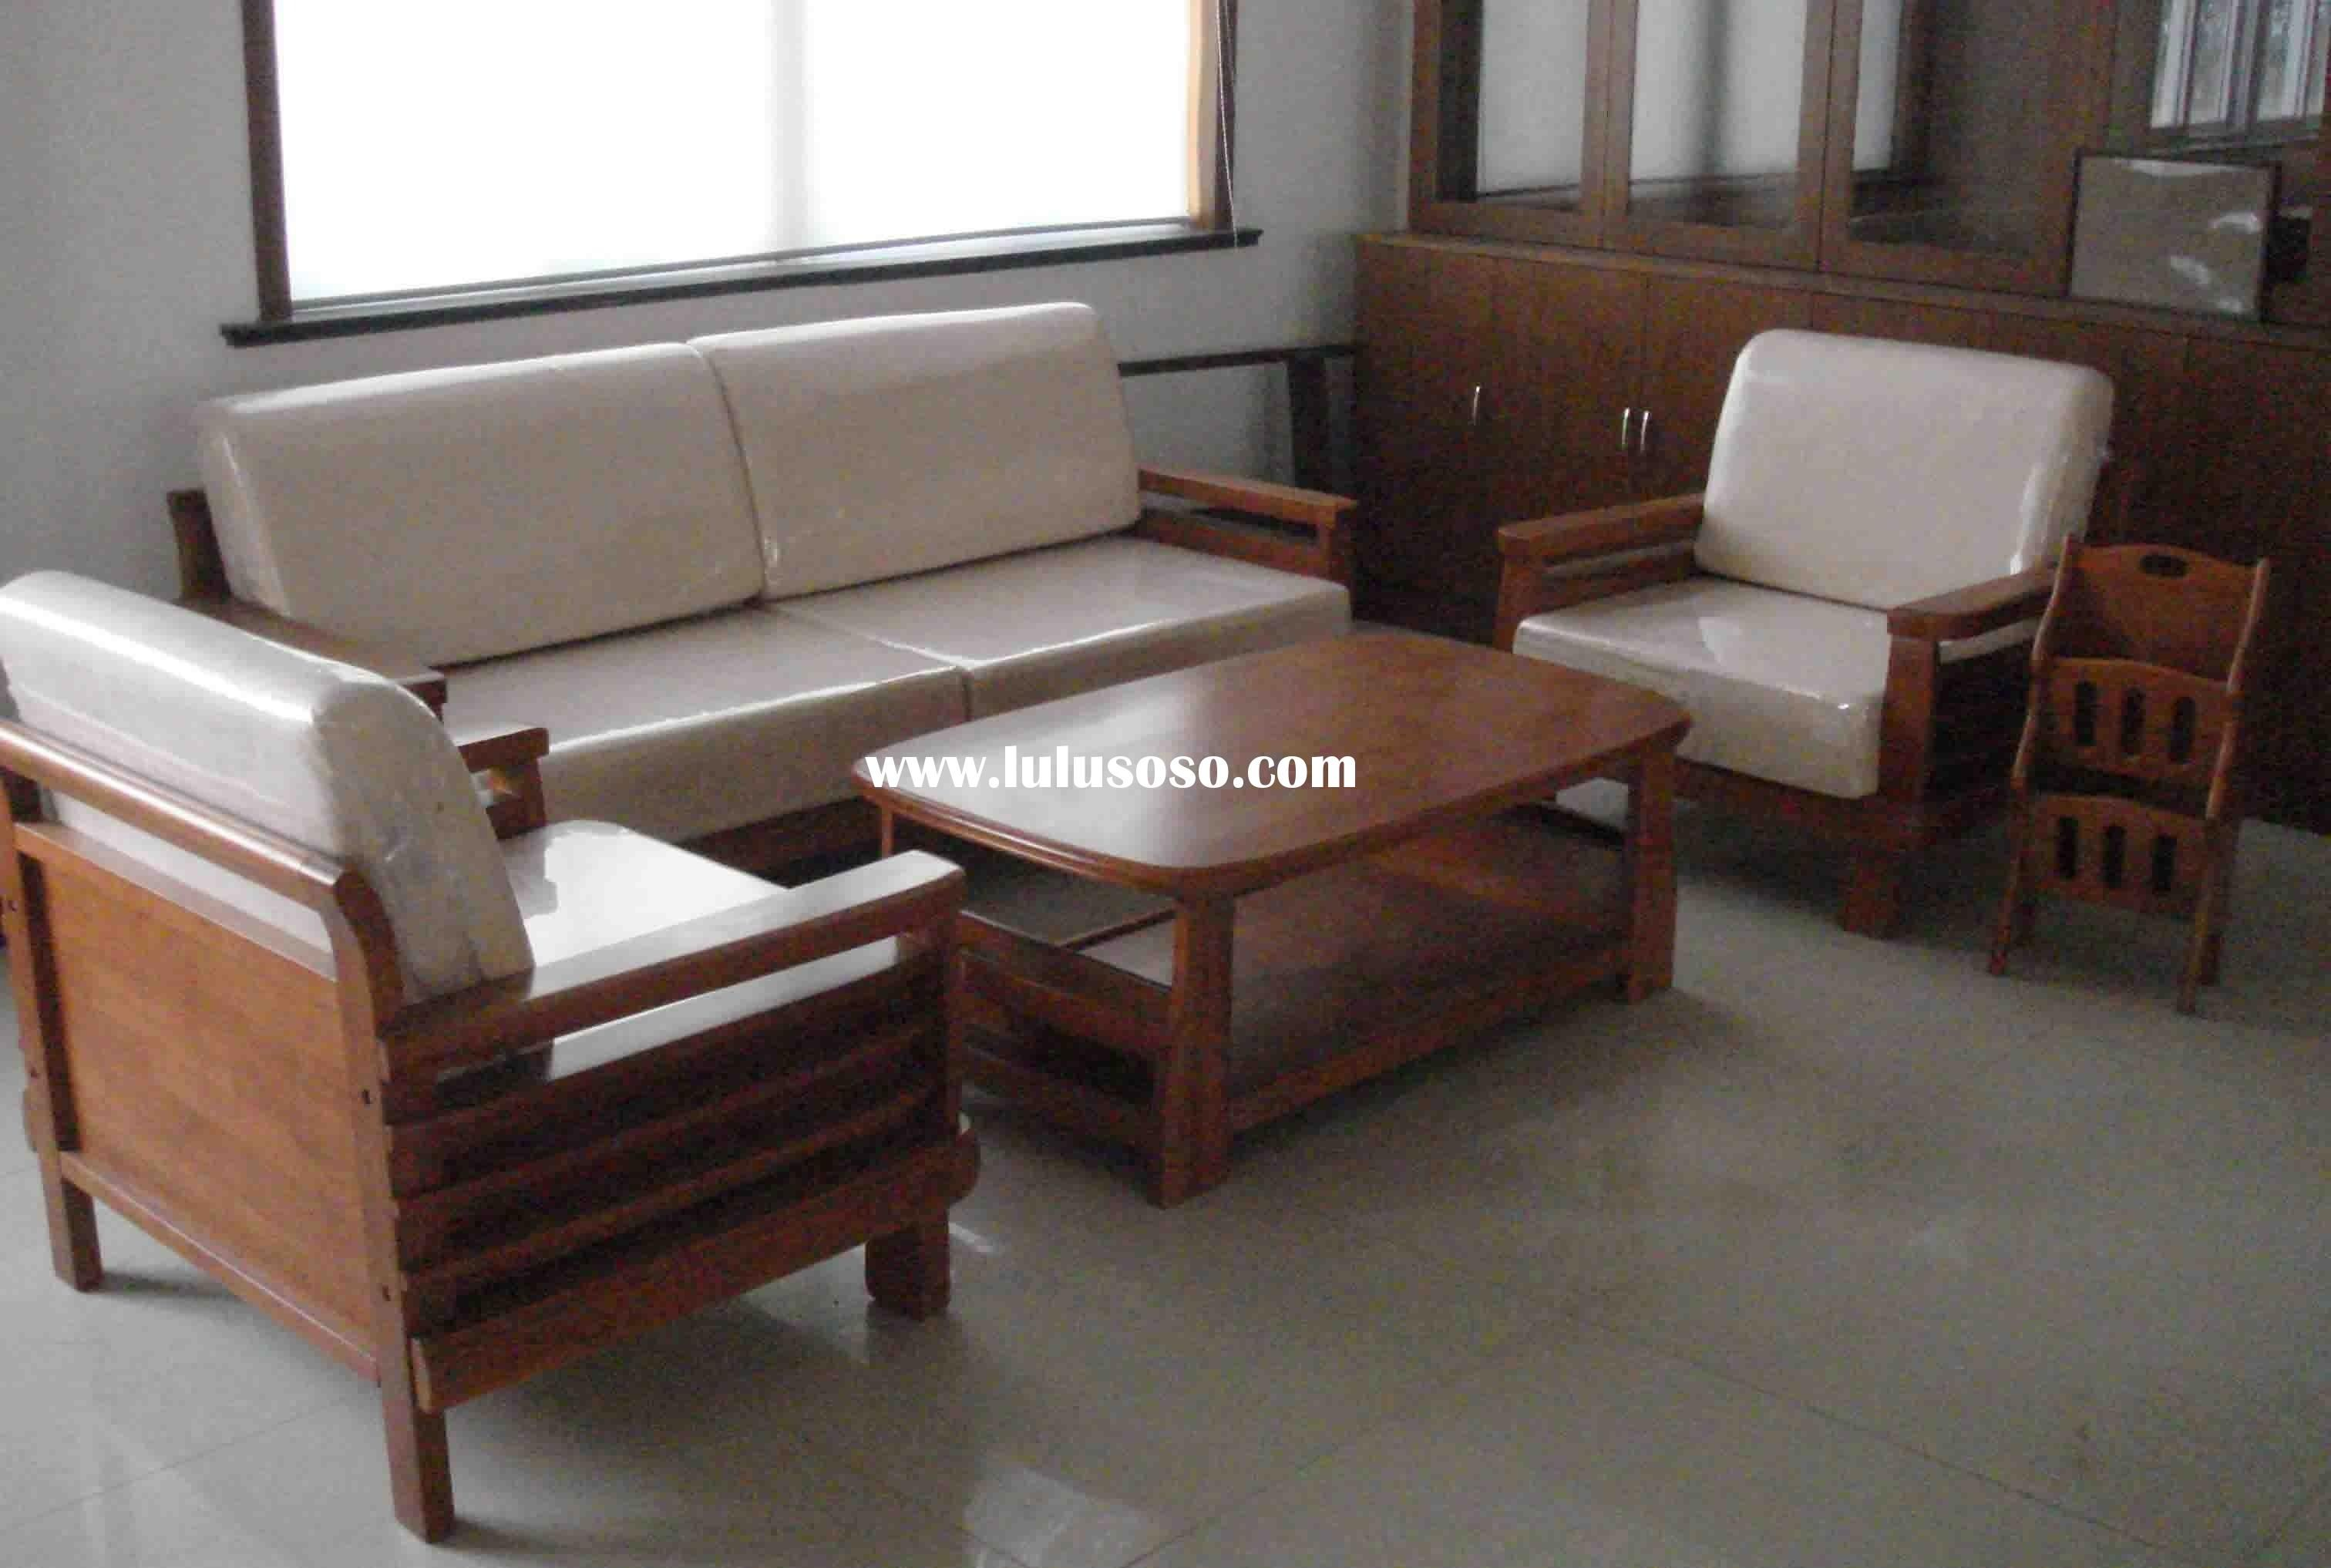 Amazing Modern Style Couches Office Furniture Modern Style Wooden Wooden Sofa Set Wooden Sofa Set Designs Modern Sofa Designs